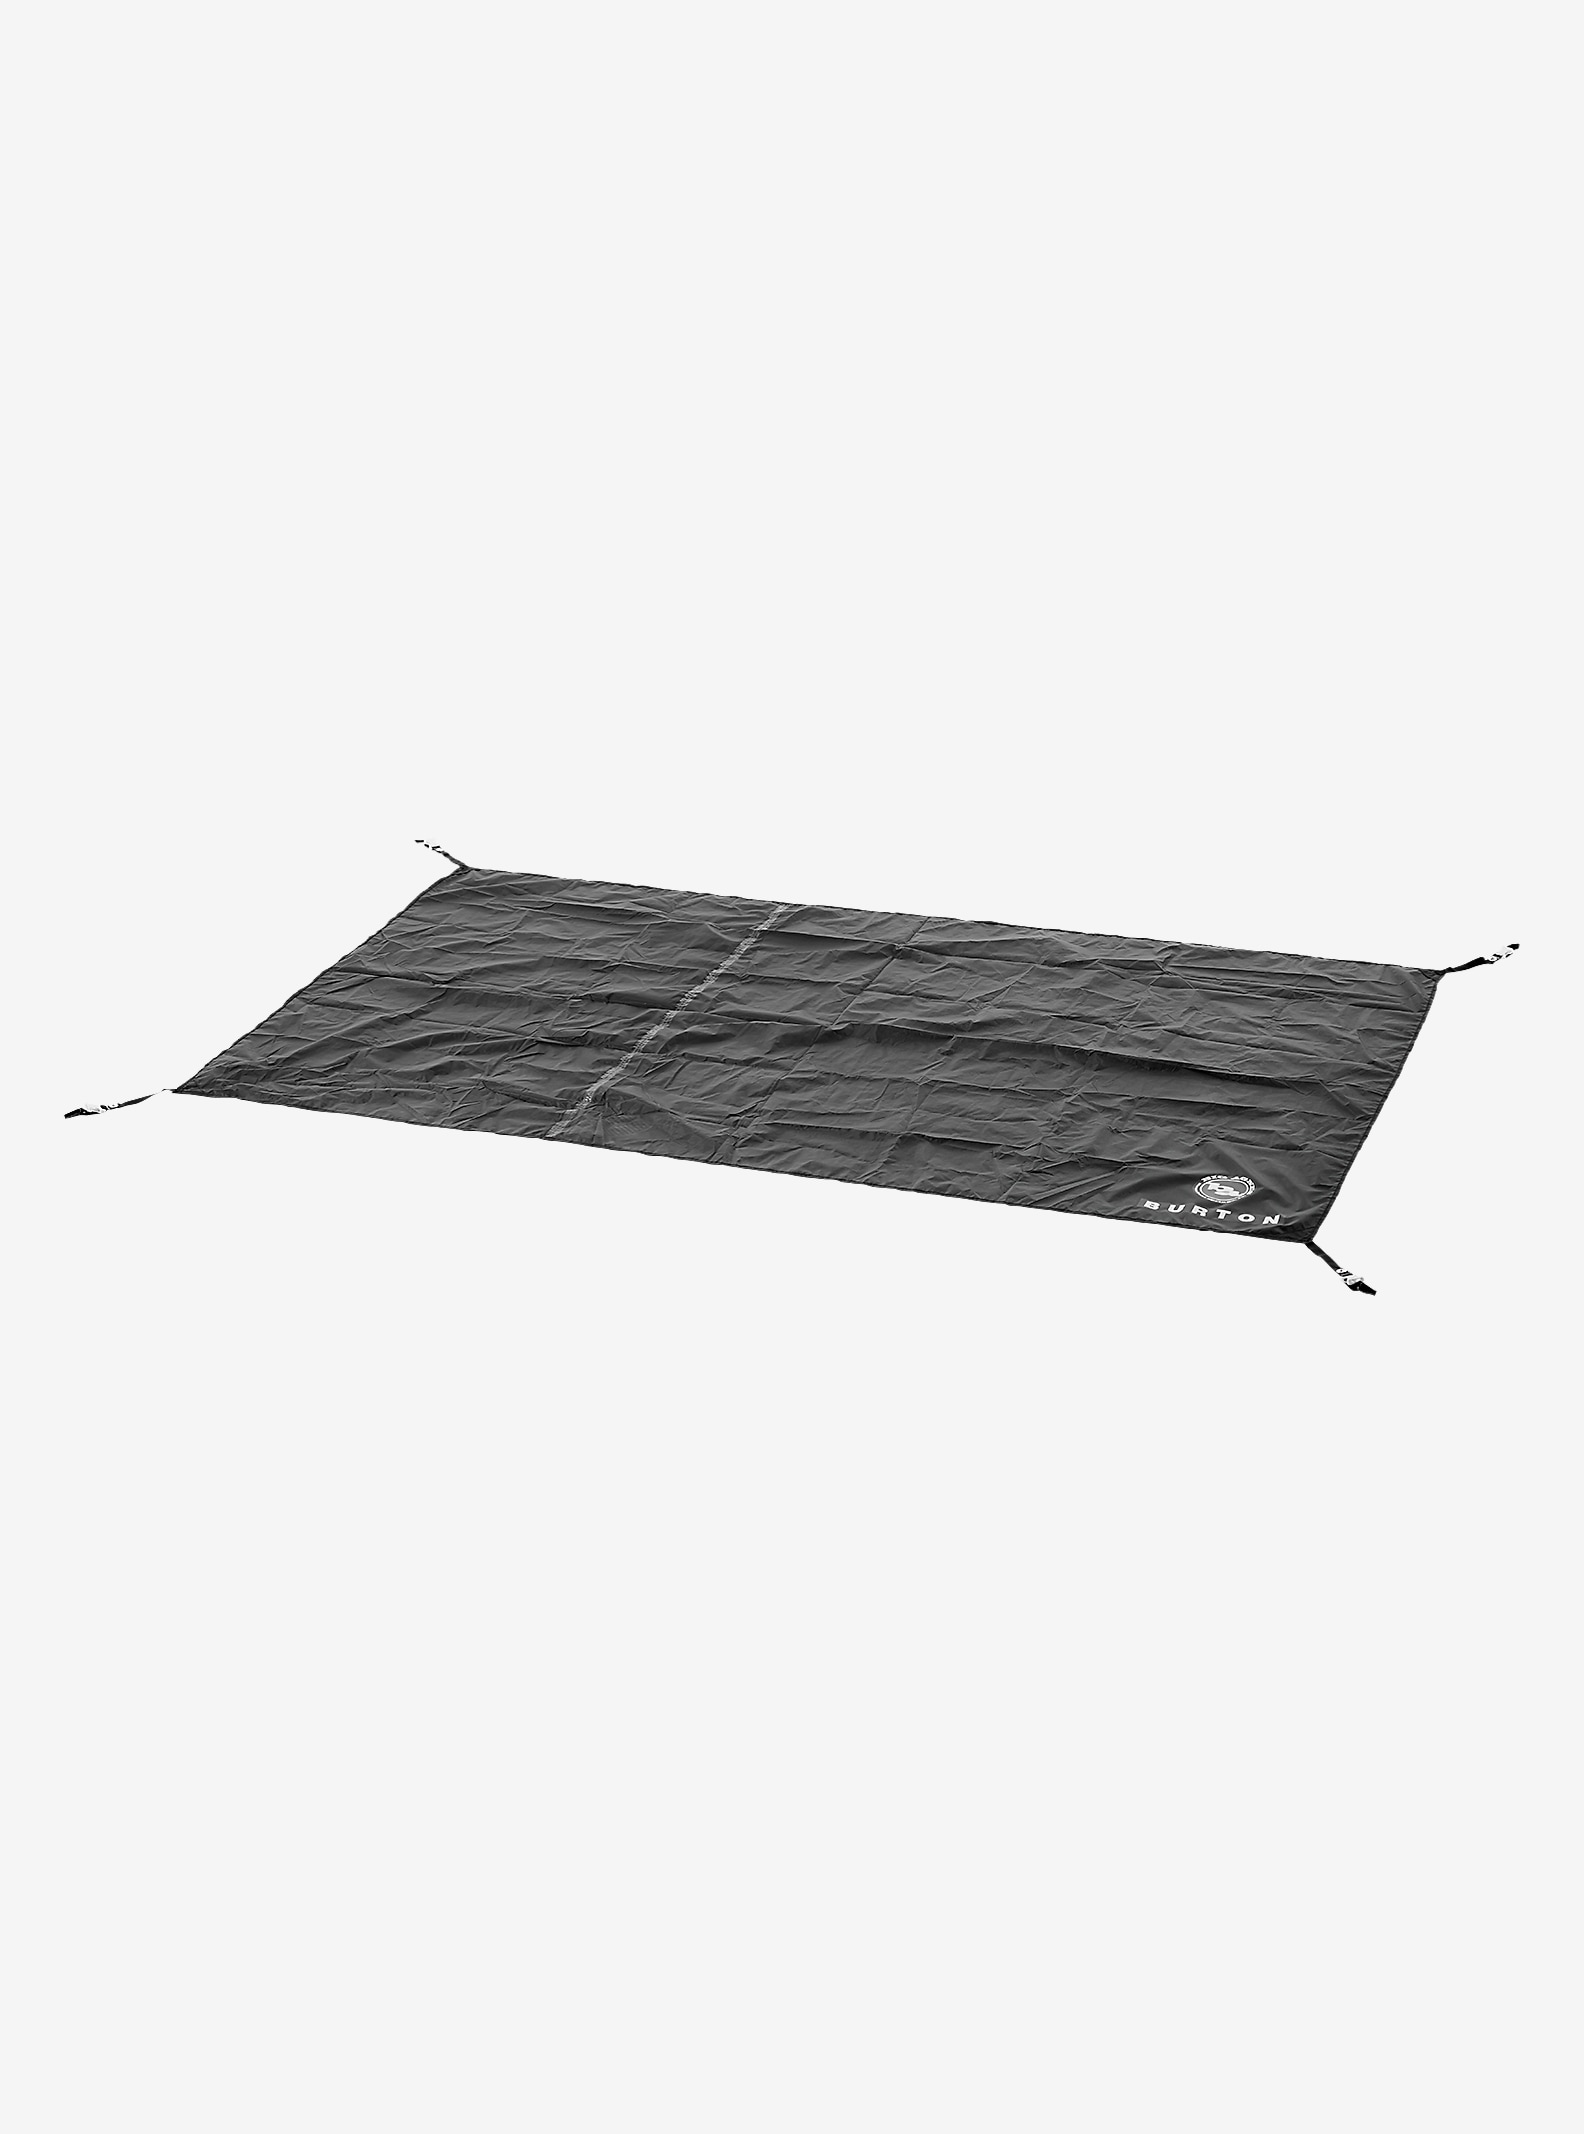 Big Agnes x Burton Nightcap Footprint shown in True Black